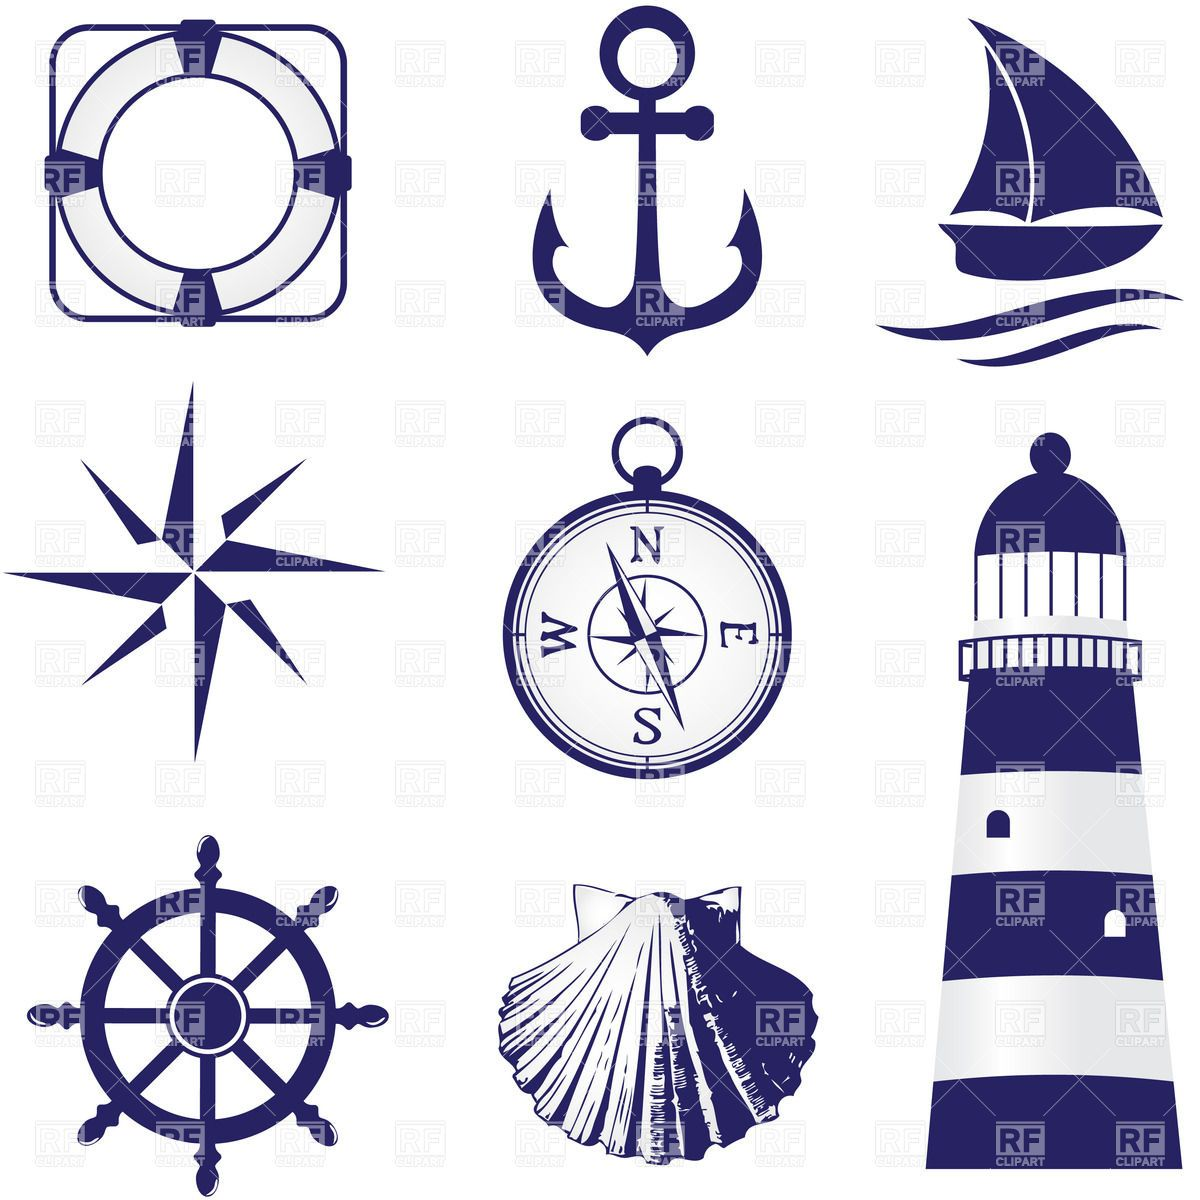 free nautical clip art downloads clipart free clipart maritim pinterest clip art free and. Black Bedroom Furniture Sets. Home Design Ideas